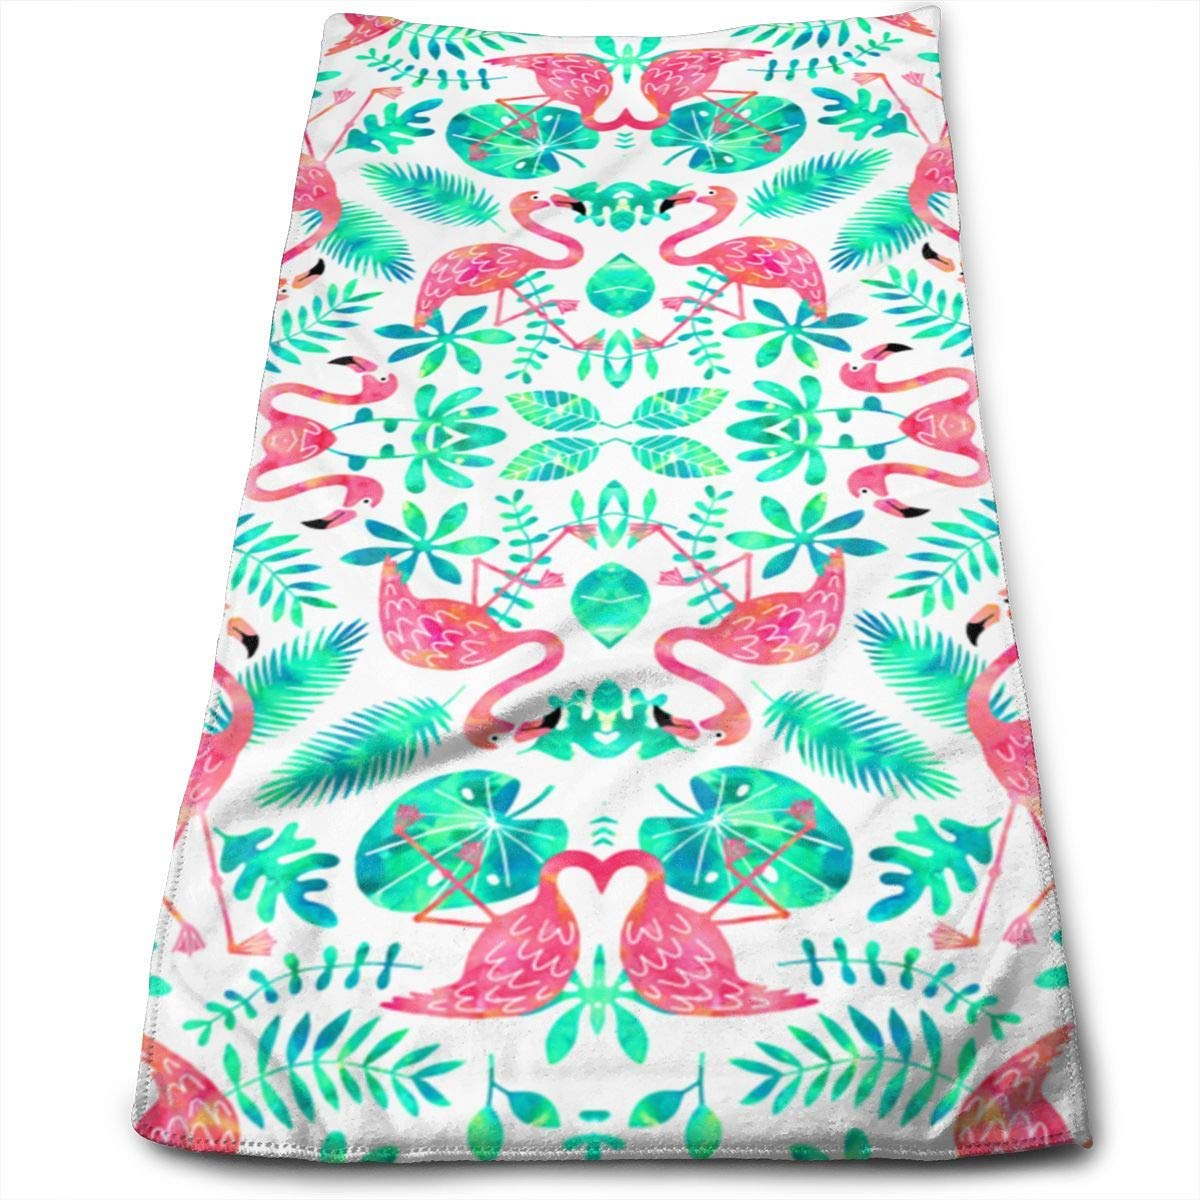 OQUYCZ Flamingo Jungle White Mint Microfiber Bath Towels,Soft, Super Absorbent and Fast Drying, Antibacterial, Use for Sports, Travel, Fitness, Yoga